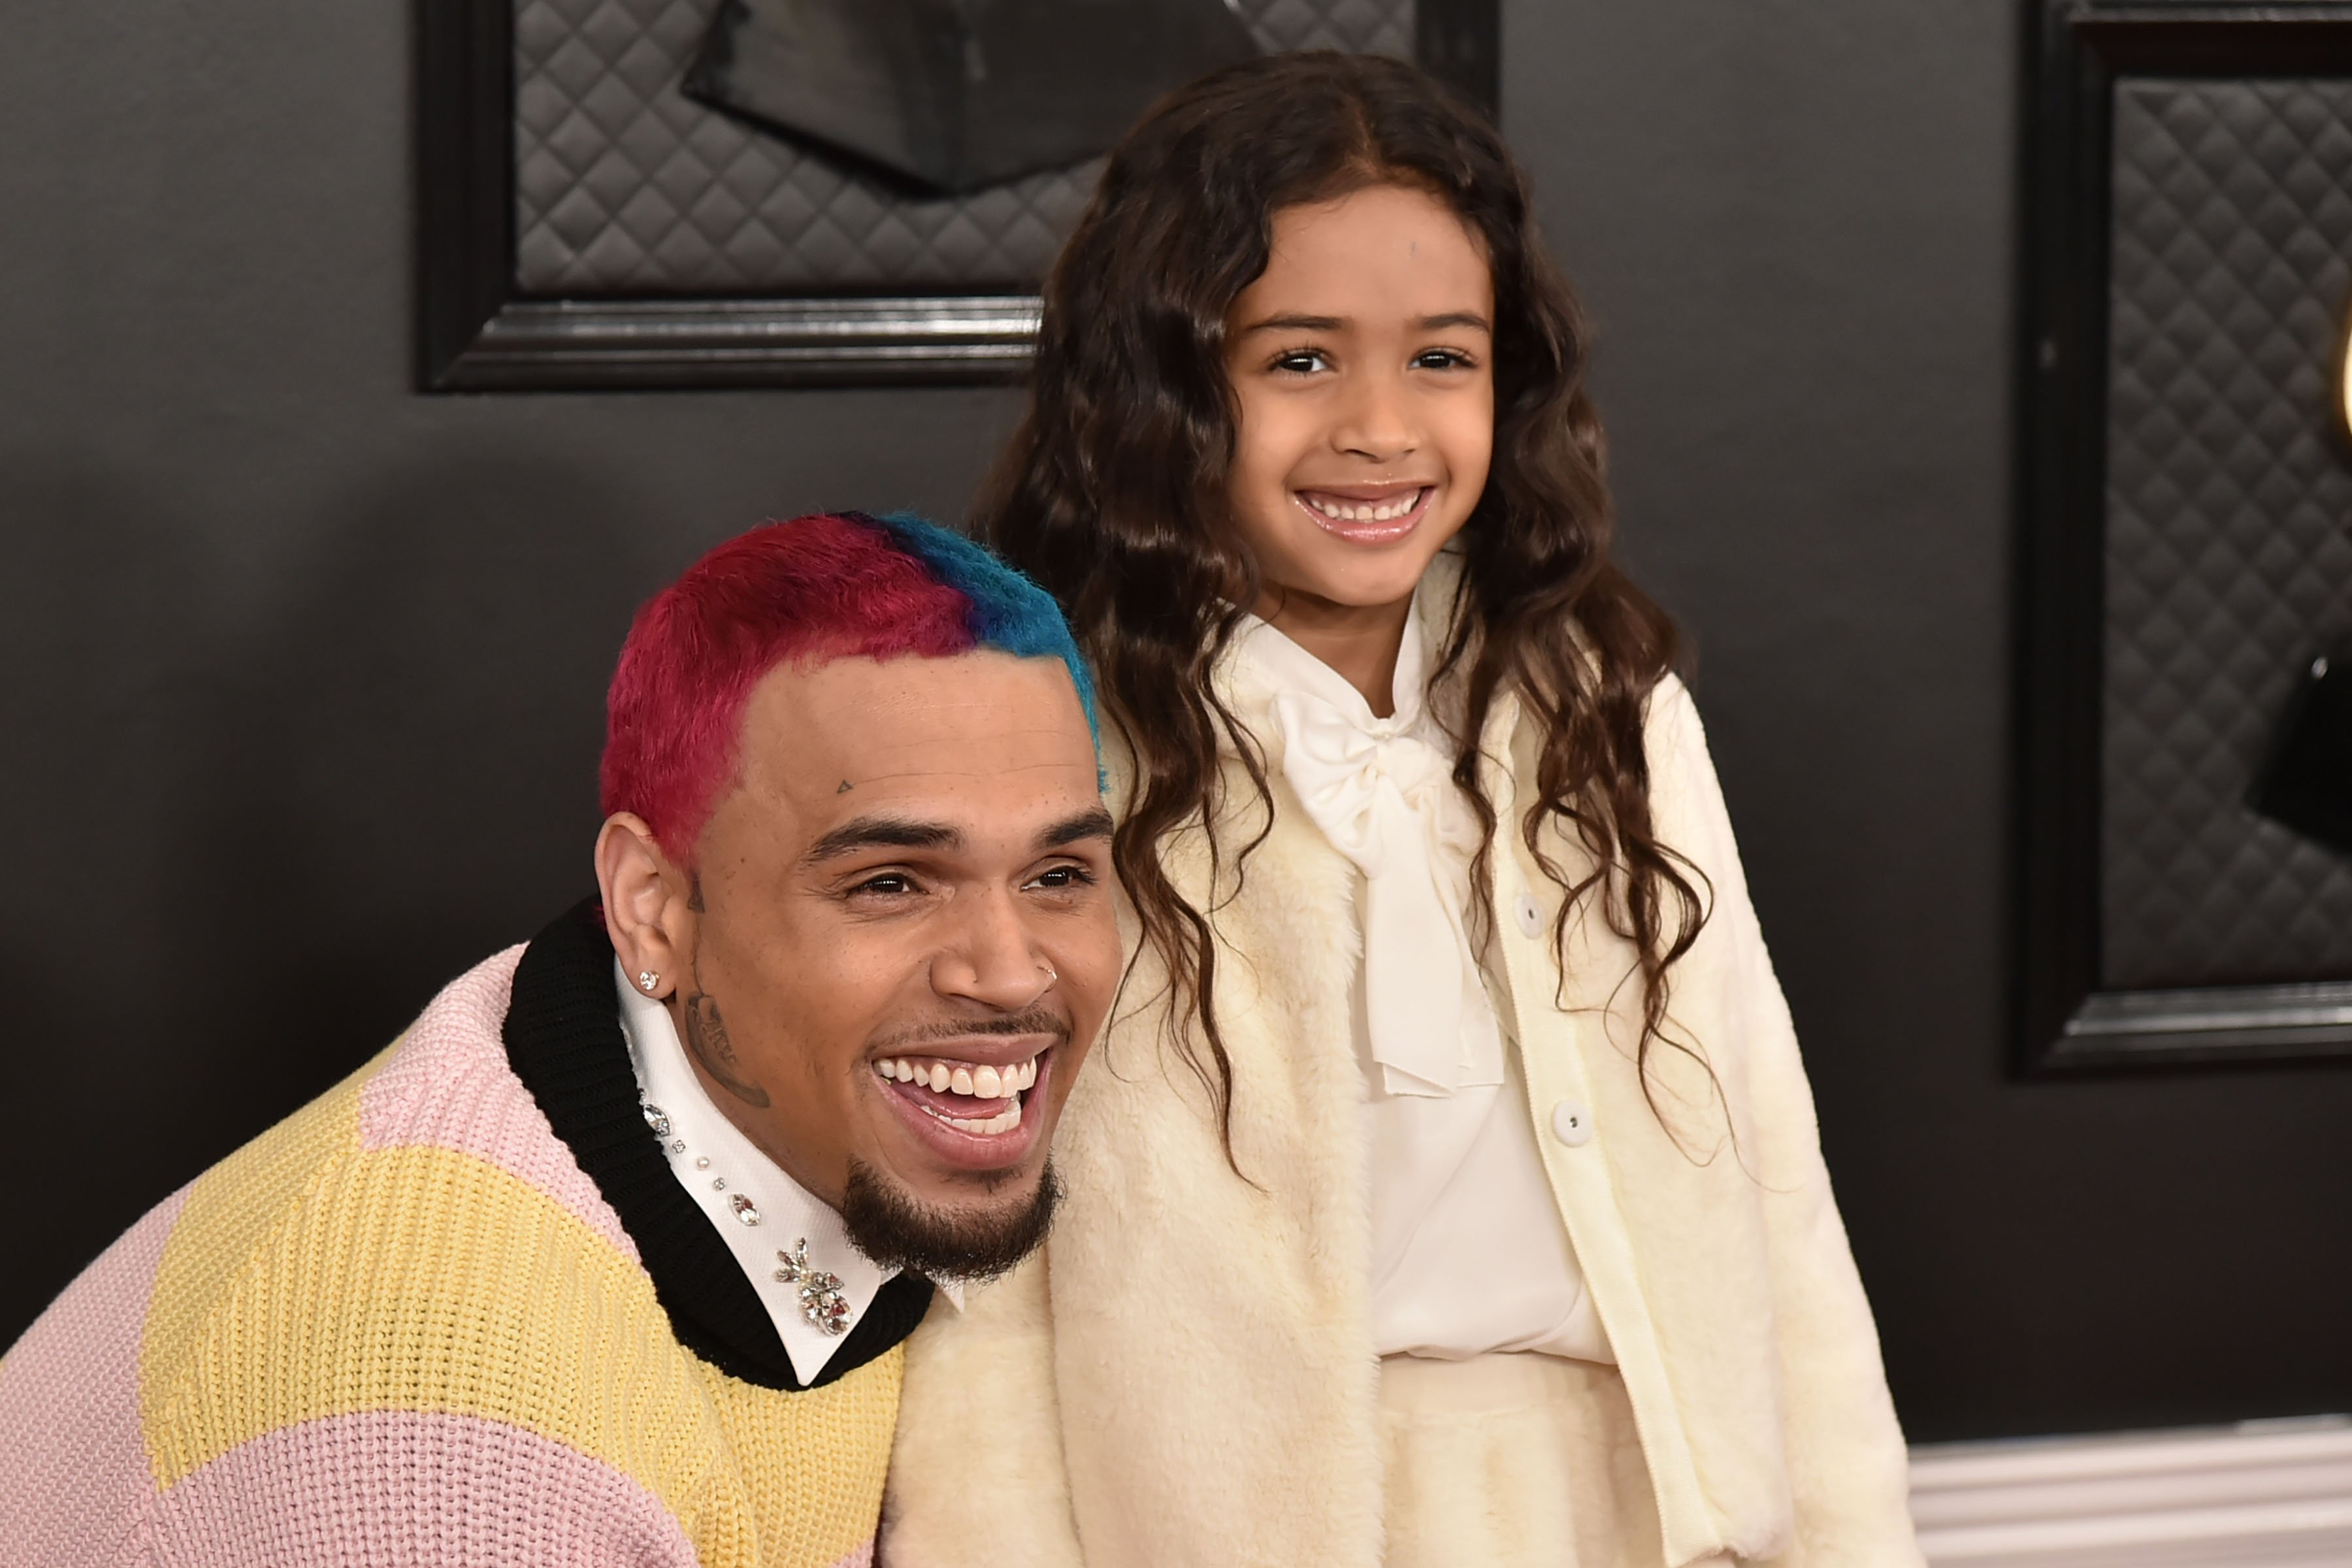 Chris Brown and Royalty Brown at the 62nd Annual Grammy Awards at Staples Center on January 26, 2020 in Los Angeles, CA  | Photo: Getty Images